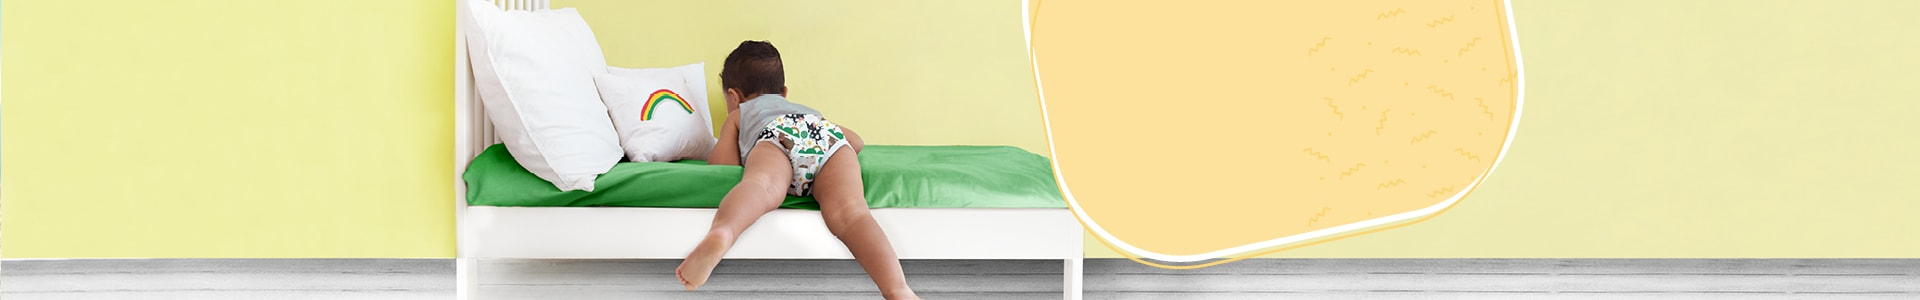 Bambino Mio toilet training tips page banner with toddler in training undies on a cot bed